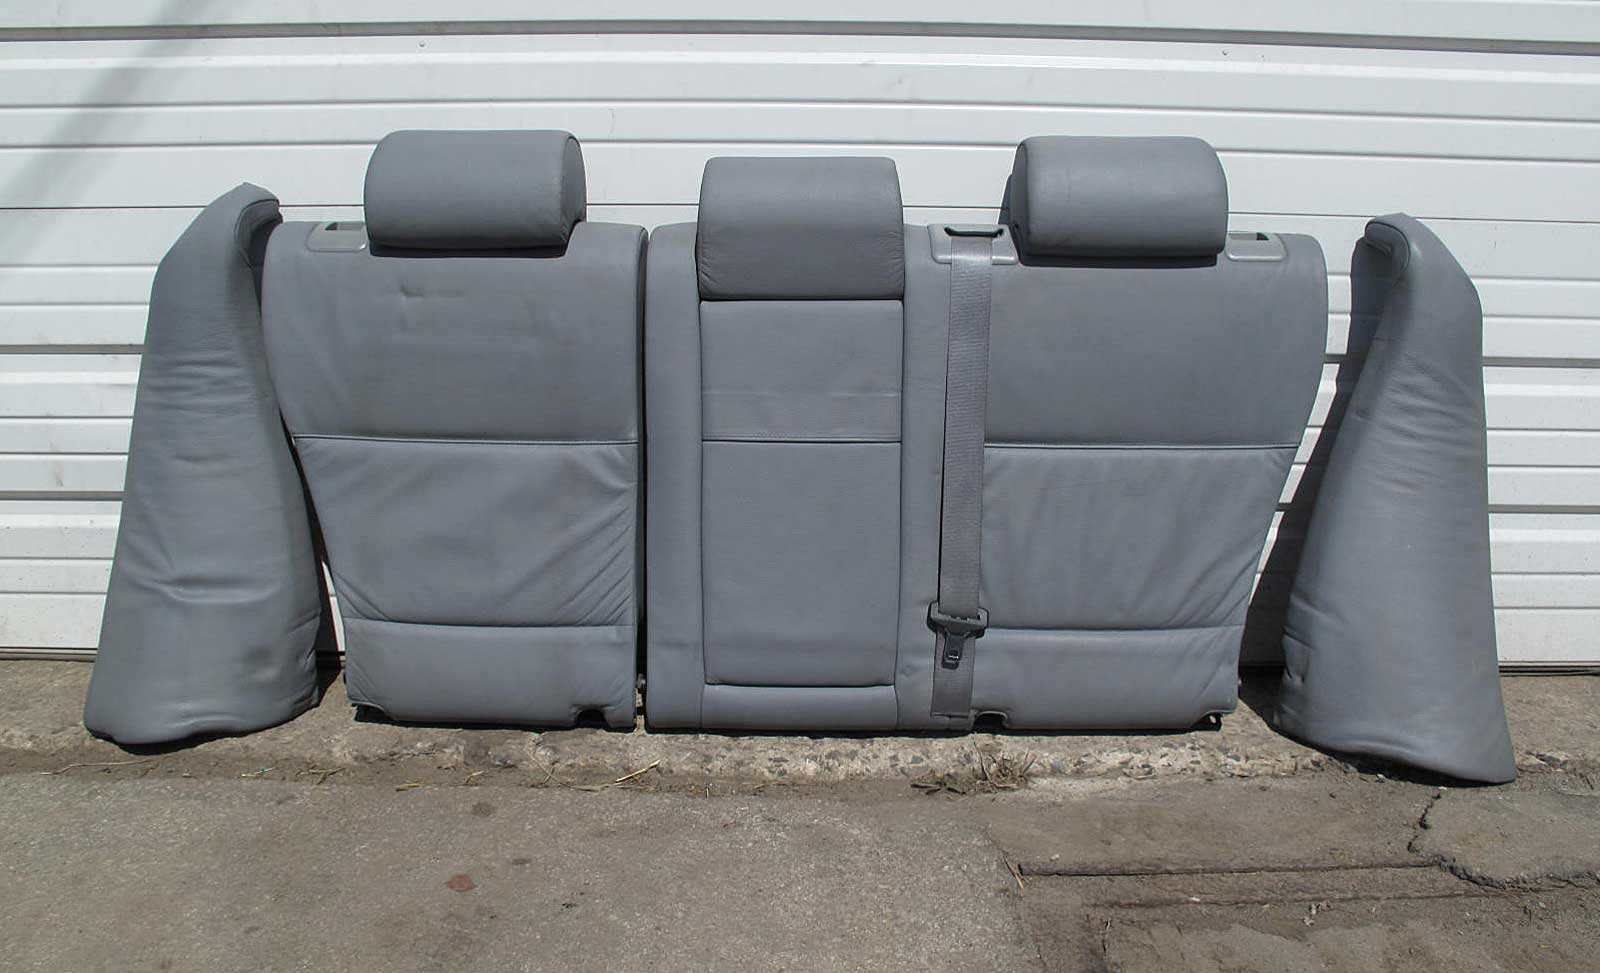 Folding down the rear seatback